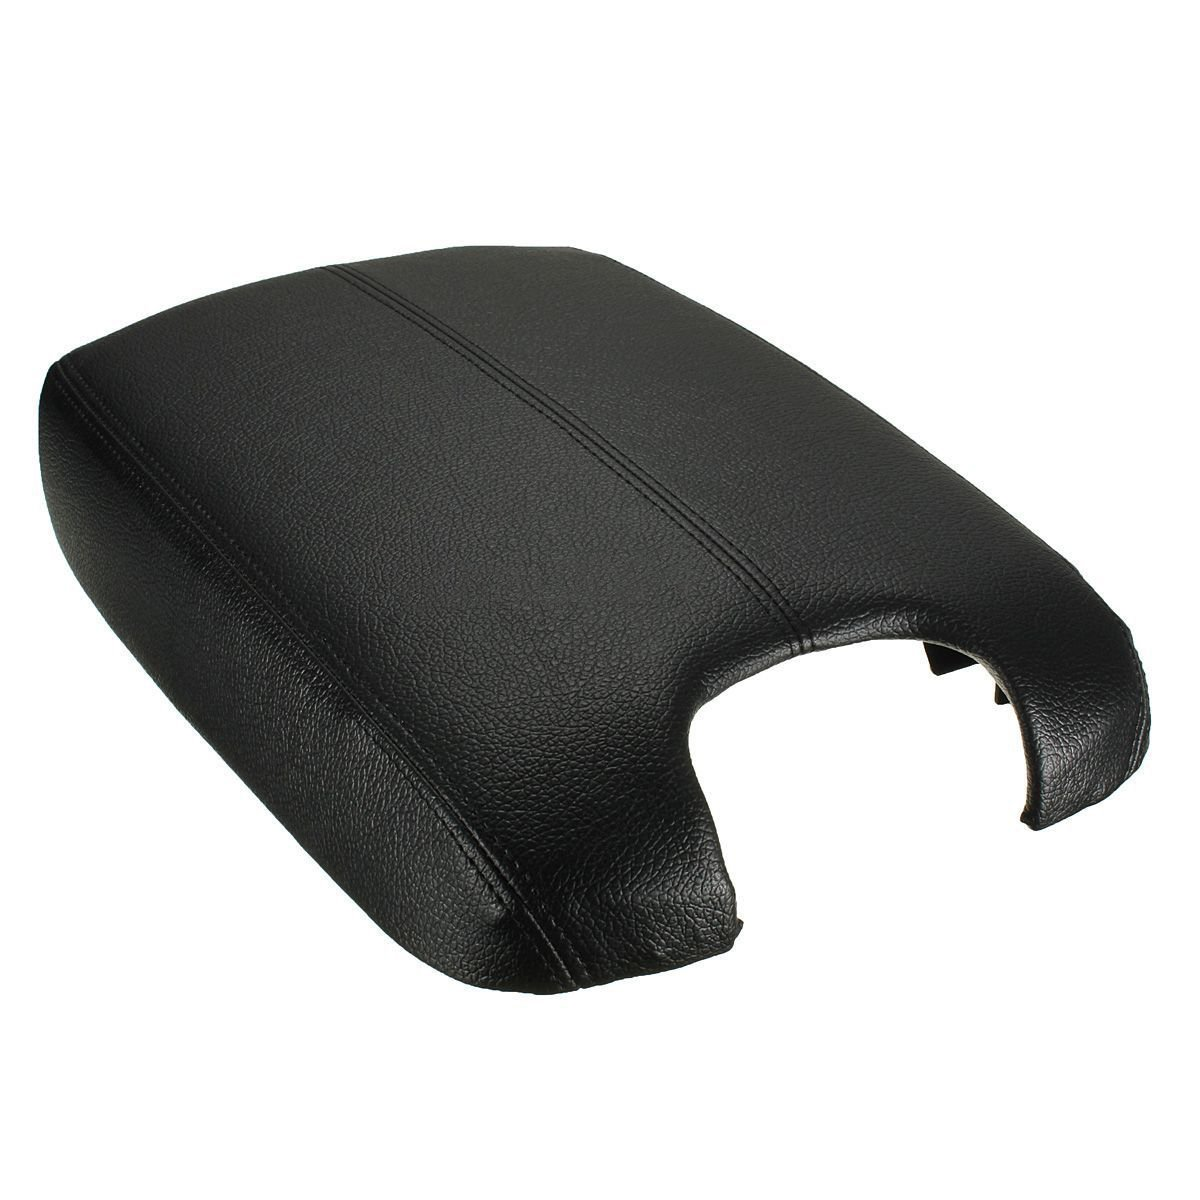 Console Armrest Cover - SODIAL(R) Black Leather Console Lid Armrest Cover (Leather Part Only) For Honda Accord